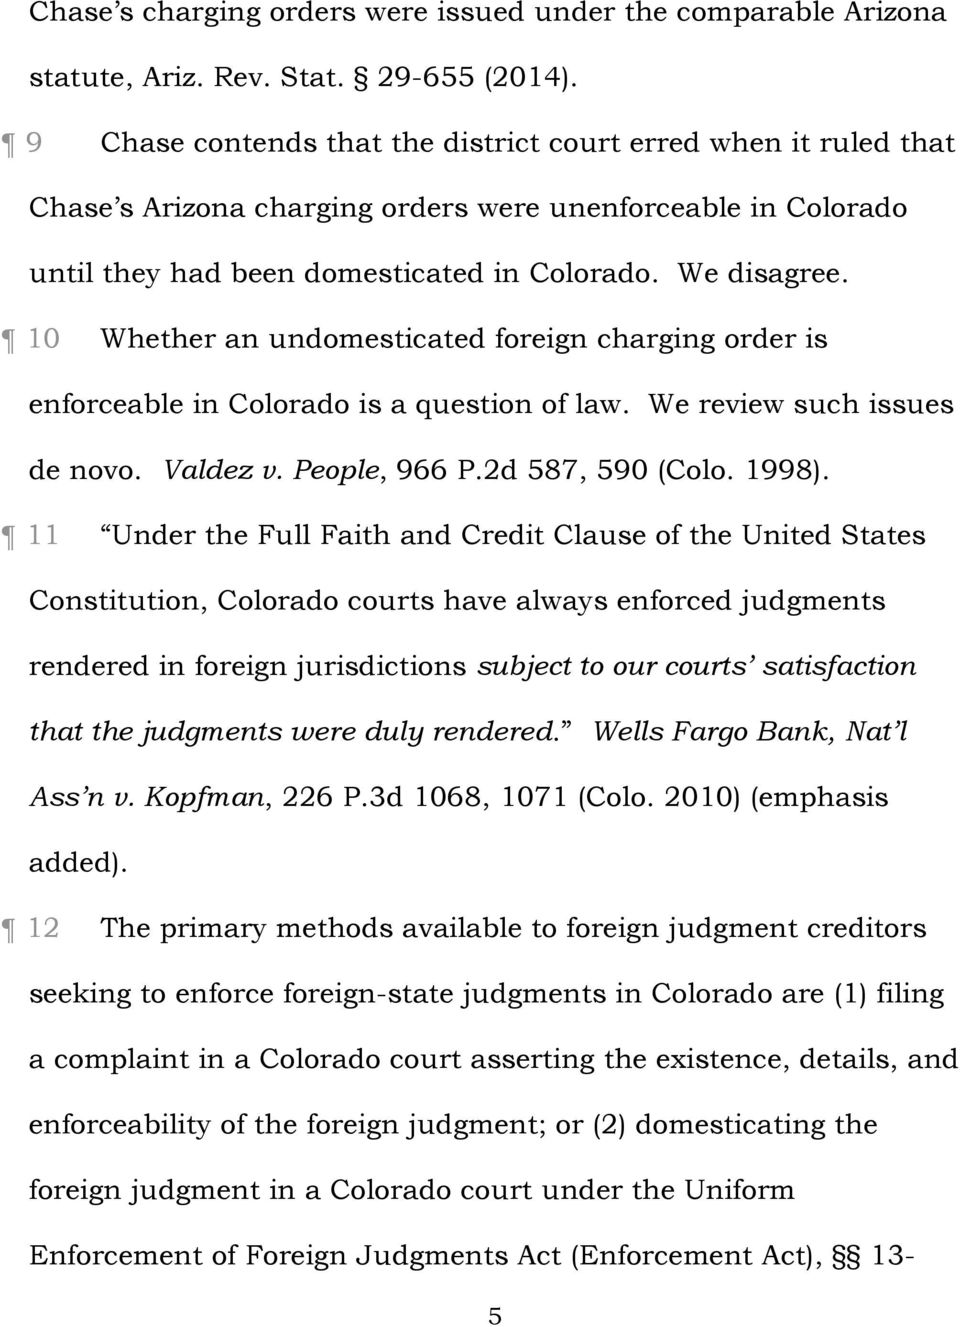 10 Whether an undomesticated foreign charging order is enforceable in Colorado is a question of law. We review such issues de novo. Valdez v. People, 966 P.2d 587, 590 (Colo. 1998).